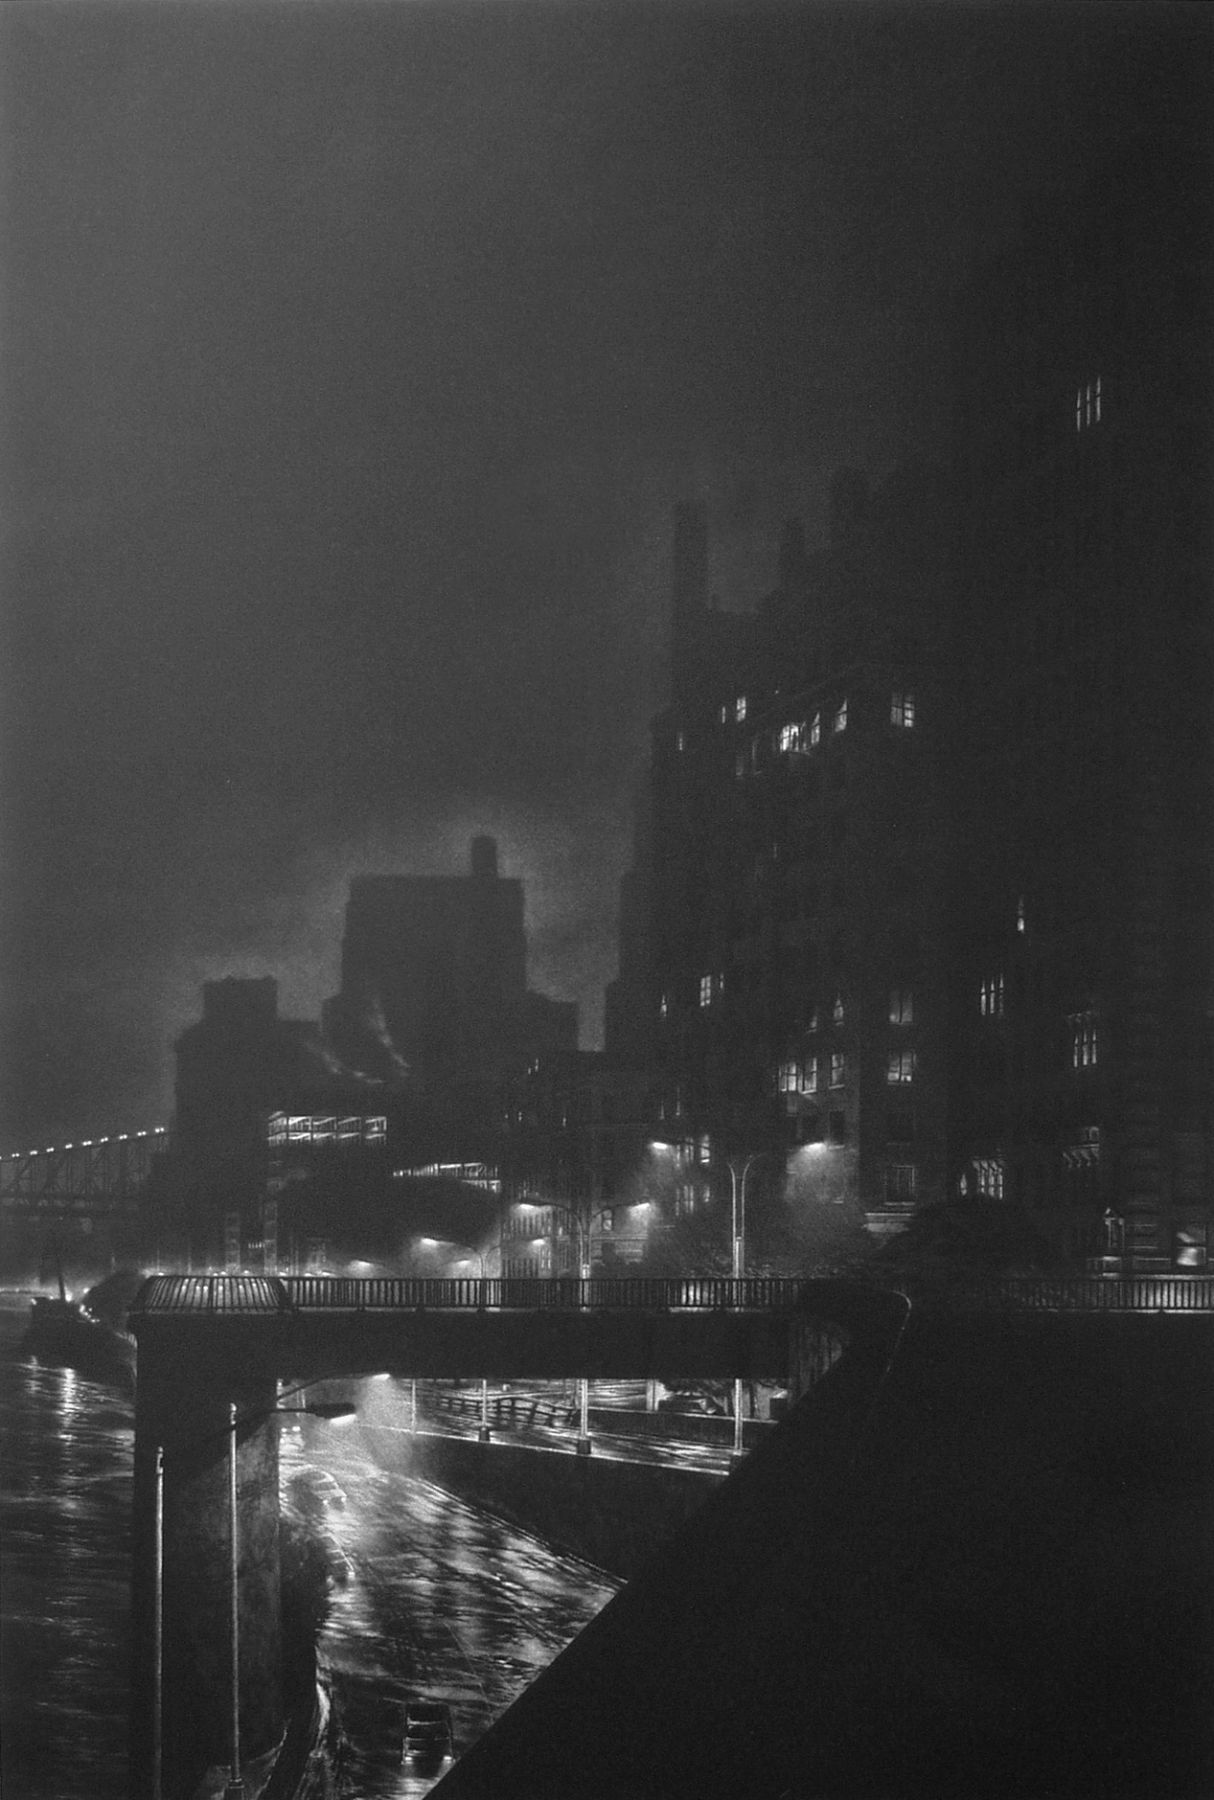 craig mcpherson, FDR Drive, 1993, mezzotint printed on white BFK Rives paper, 35 1/2 x 23 3/4 inches